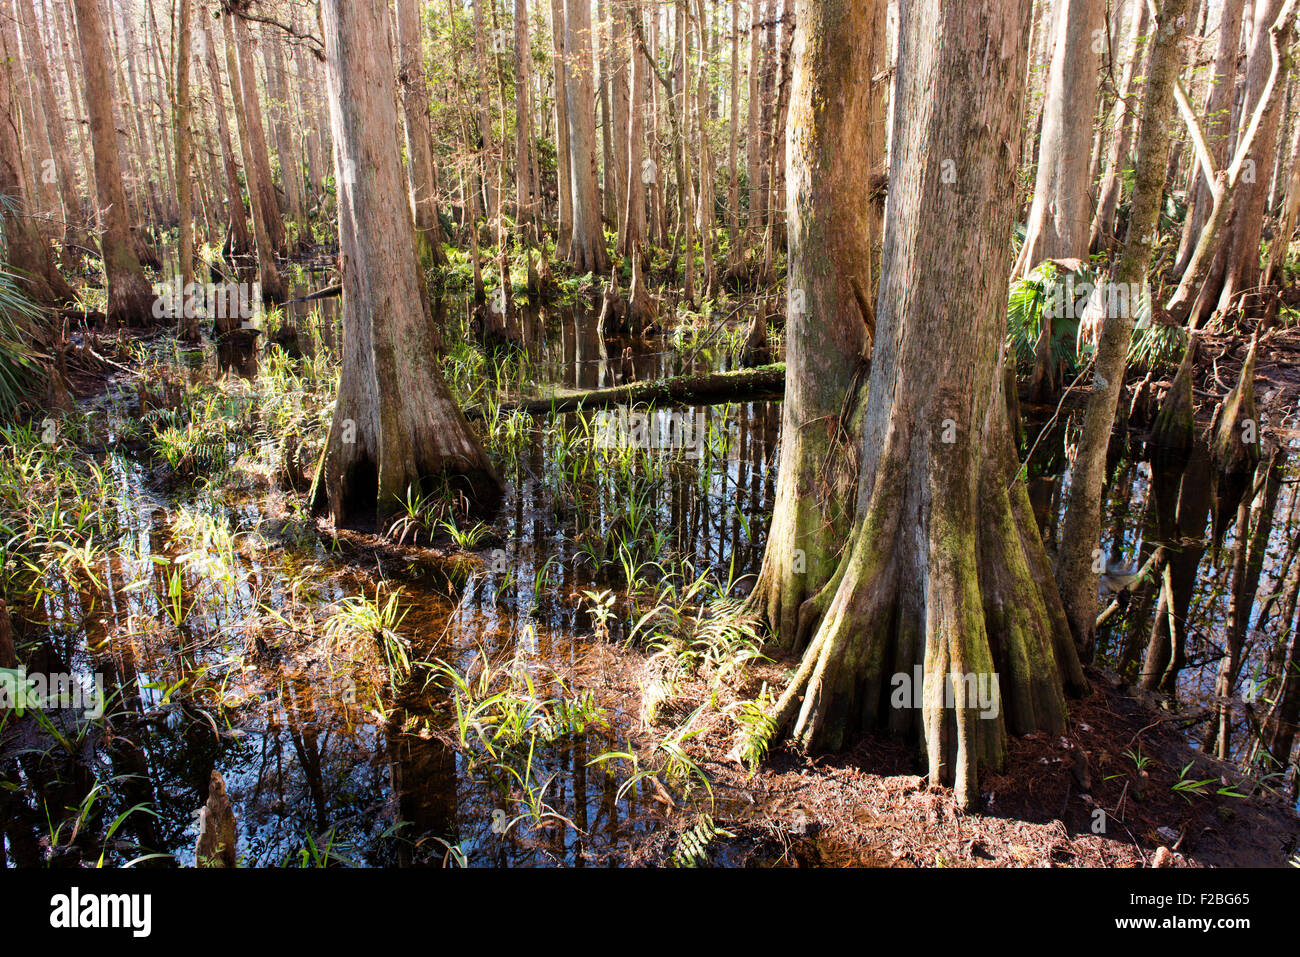 Bald cypress trees in the Highland Hammocks State Park, Florida. - Stock Image